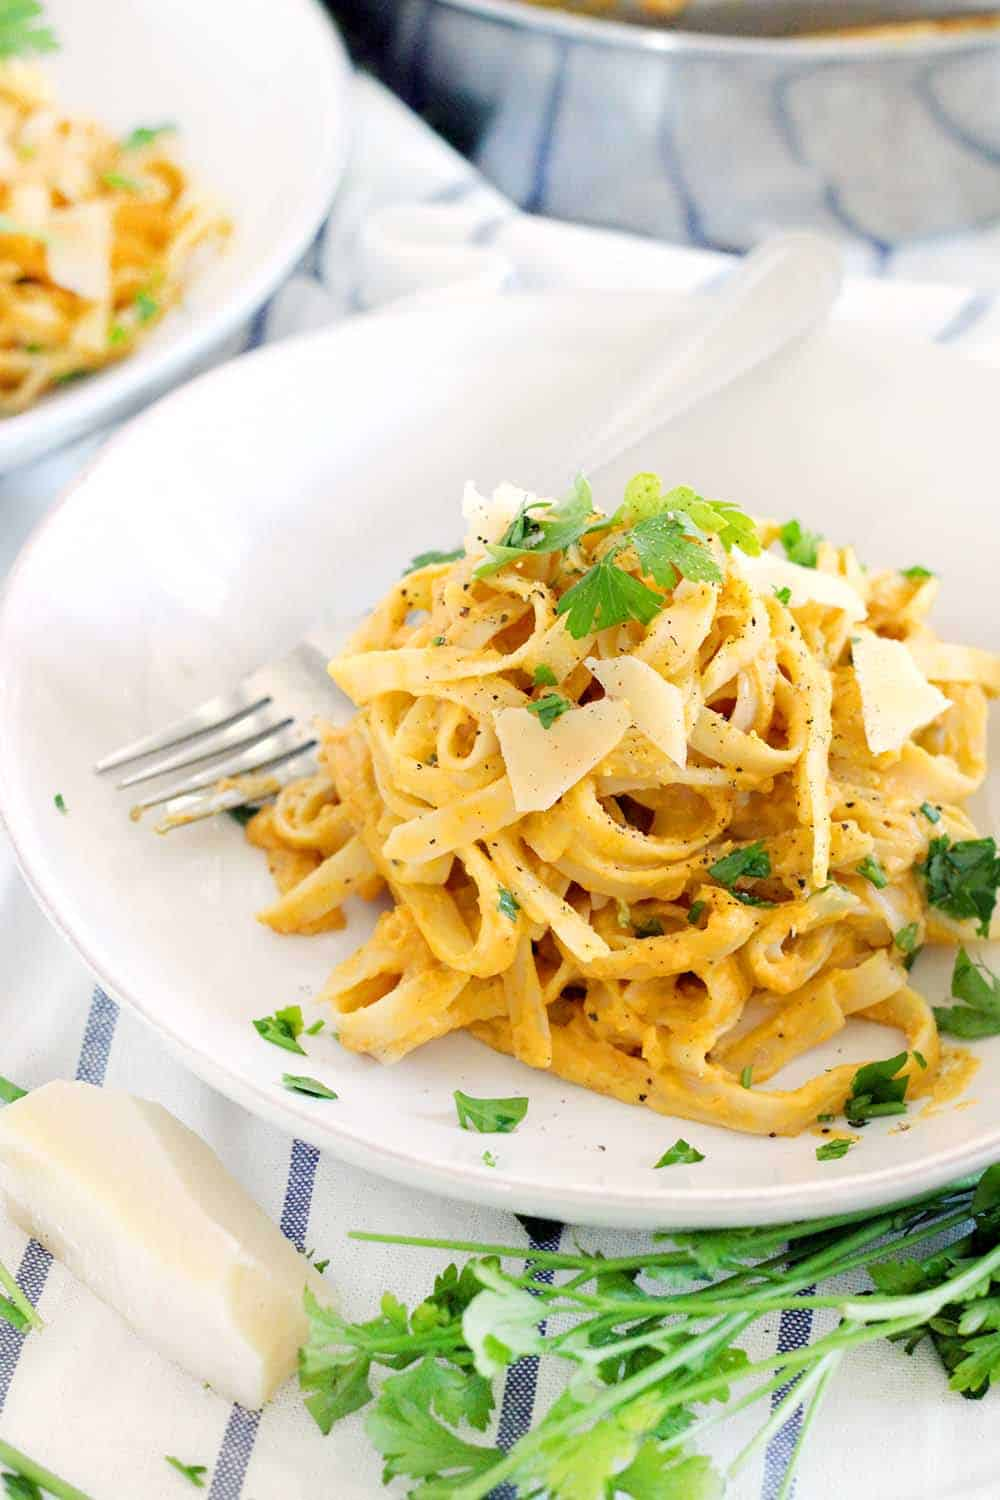 With 60% fewer calories than traditional Alfredo sauce, this Pumpkin Fettucini Alfredo is healthy, creamy, and delicious. It's a great way to sneak veggies into a main course, especially in the fall season!